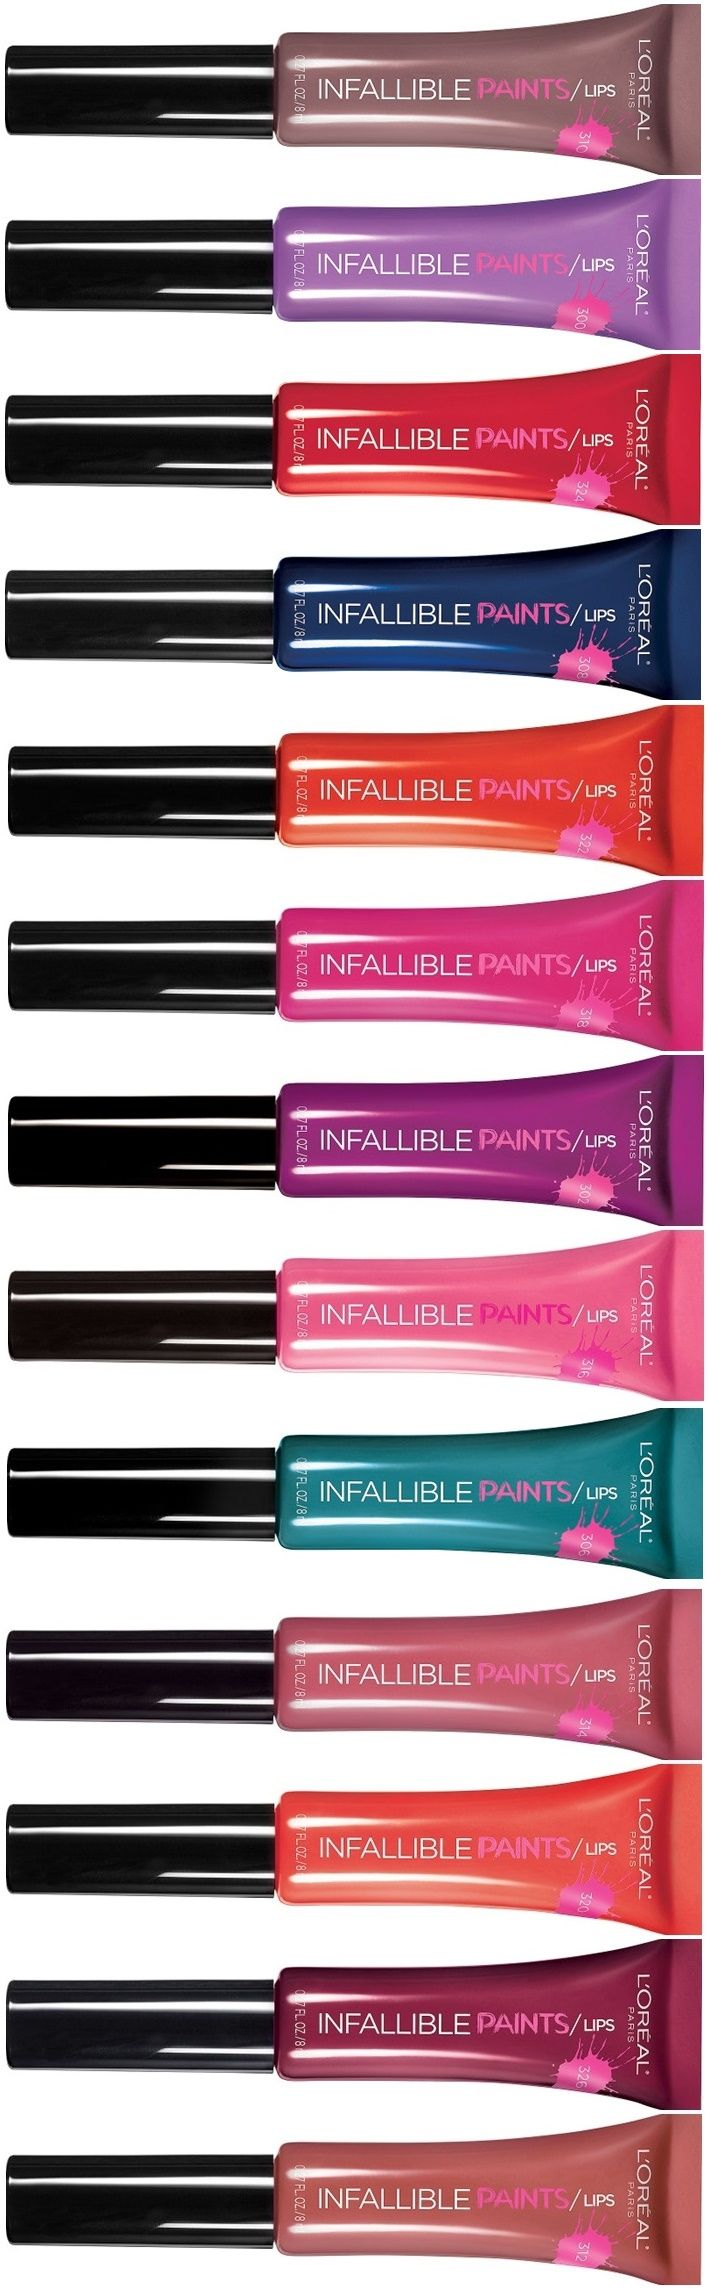 New Infallible Lip Paints in 14 bold color shades. Available now at Ulta.com and soon to all US retailers!